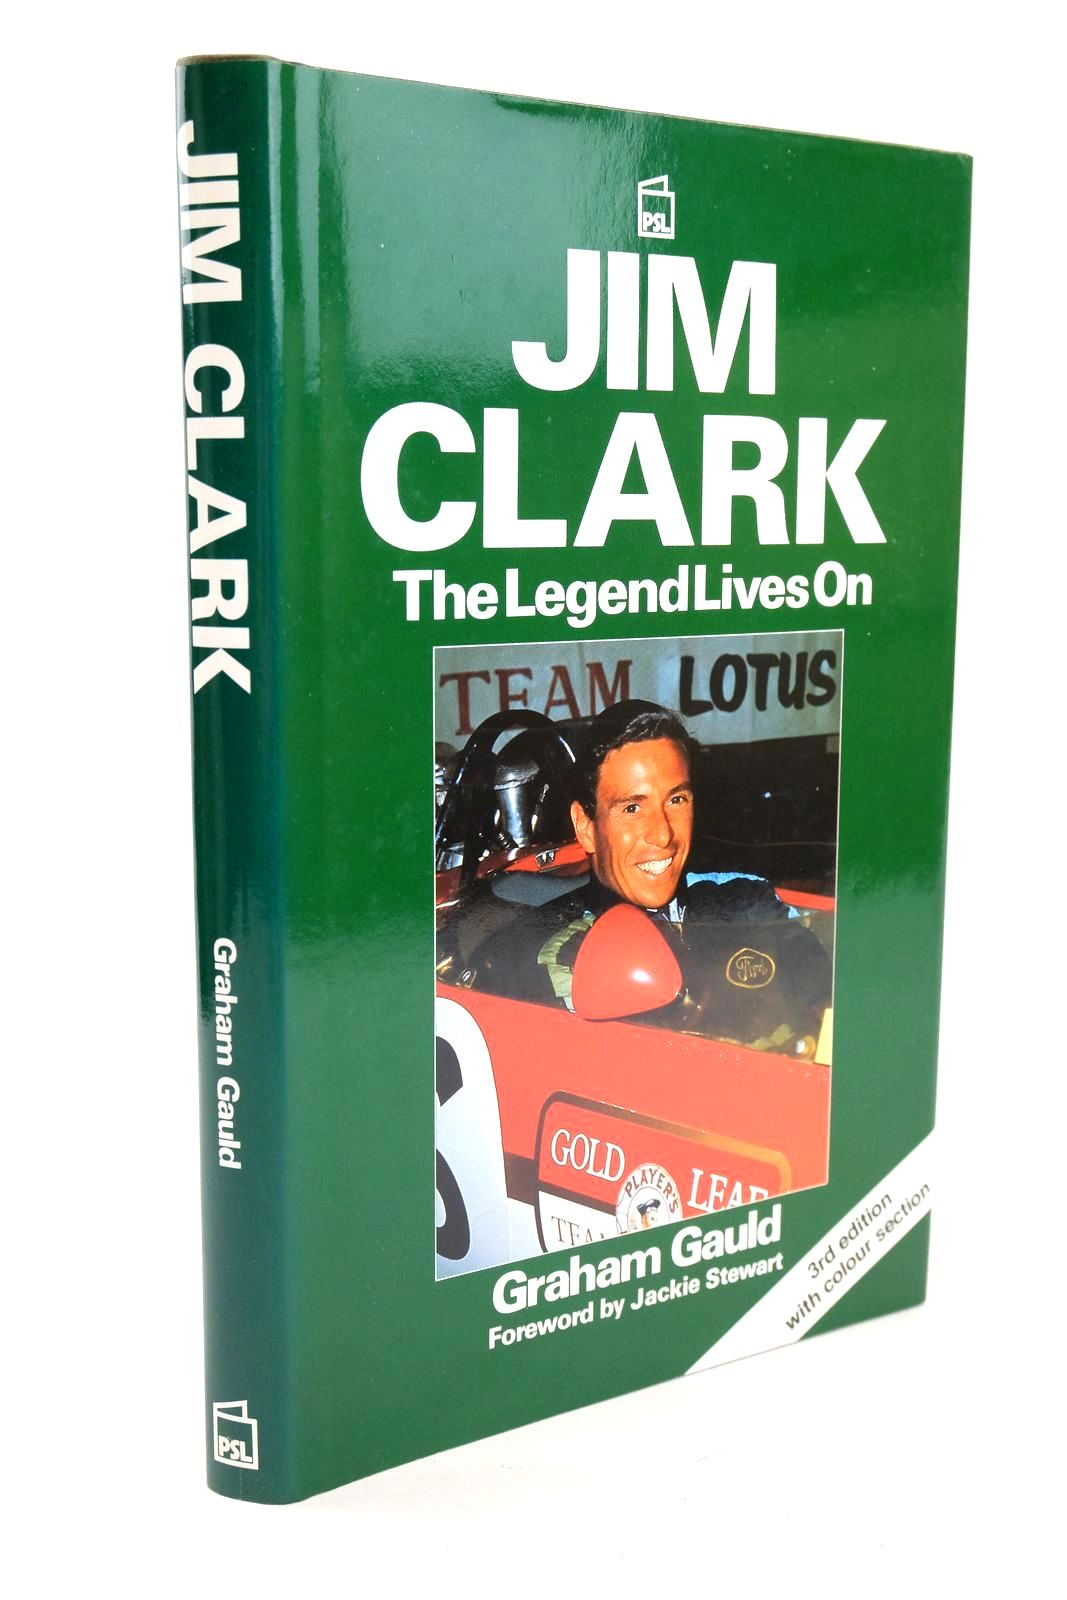 Photo of JIM CLARK THE LEGEND LIVES ON written by Gauld, Graham published by Patrick Stephens Limited (STOCK CODE: 1318846)  for sale by Stella & Rose's Books